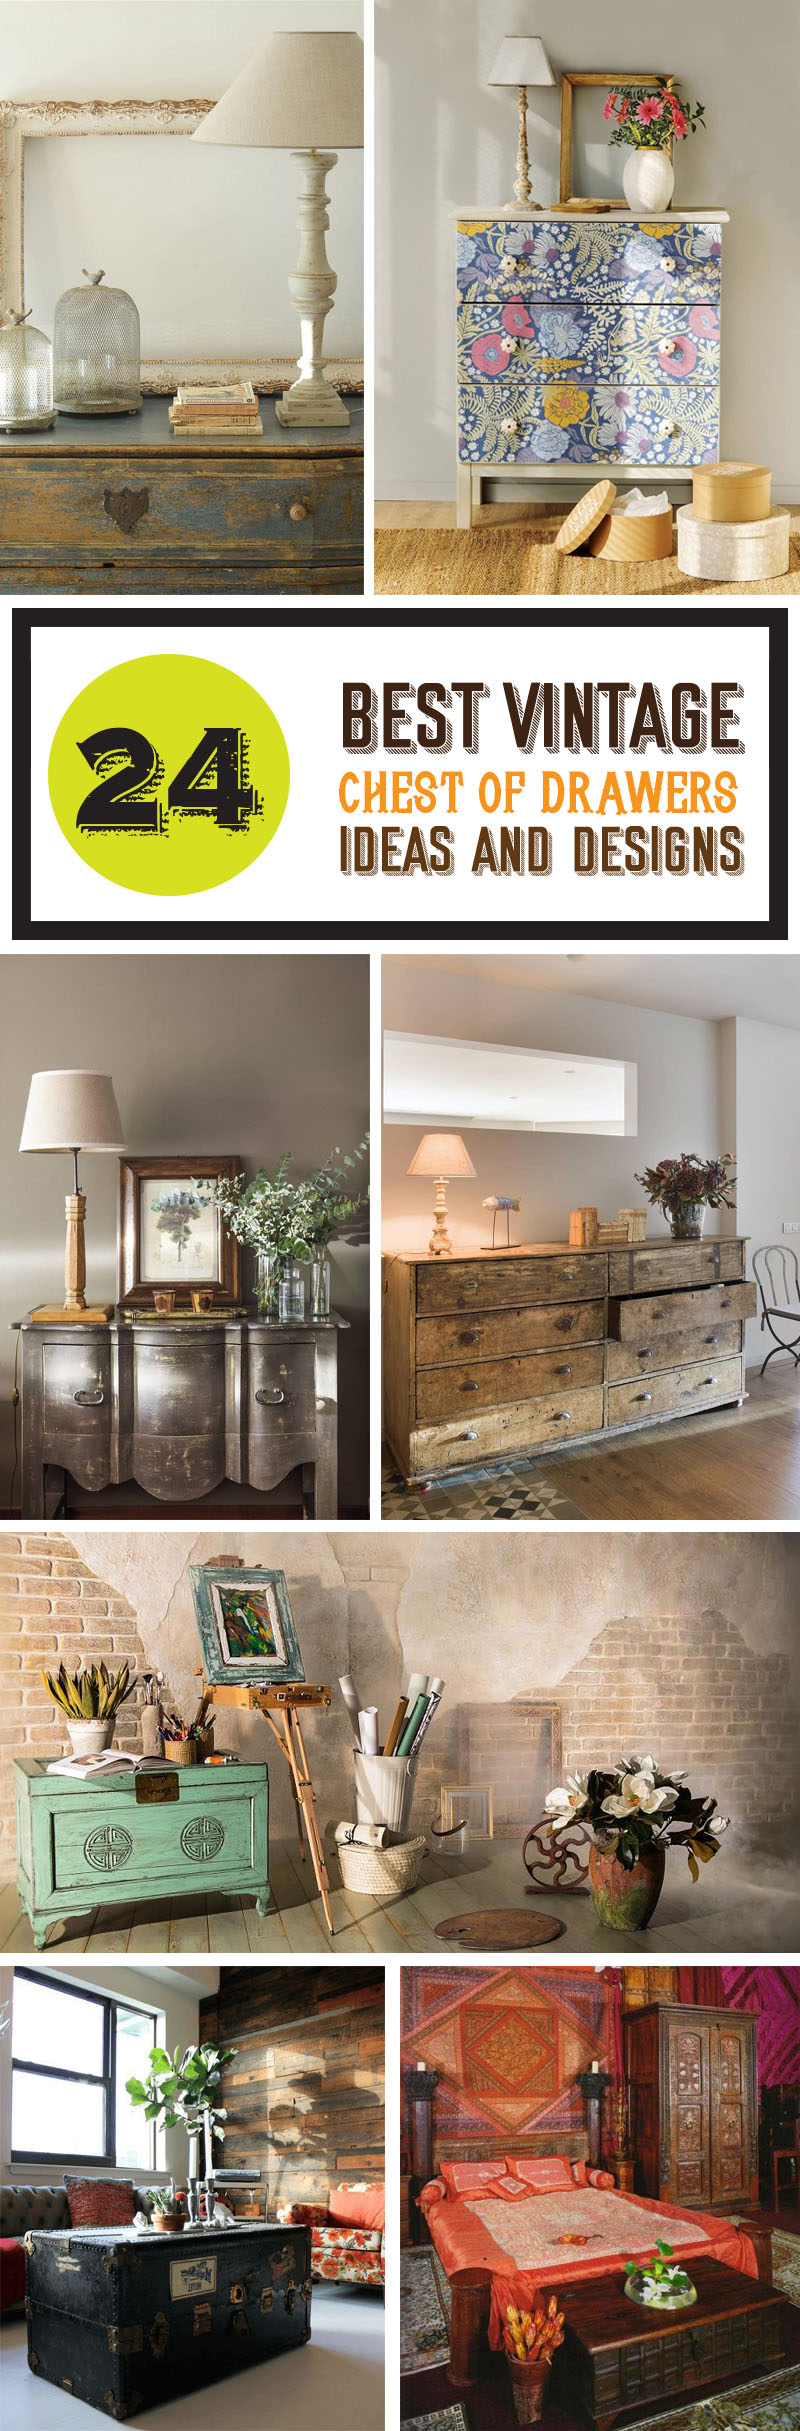 best vintage chest of drawers ideas